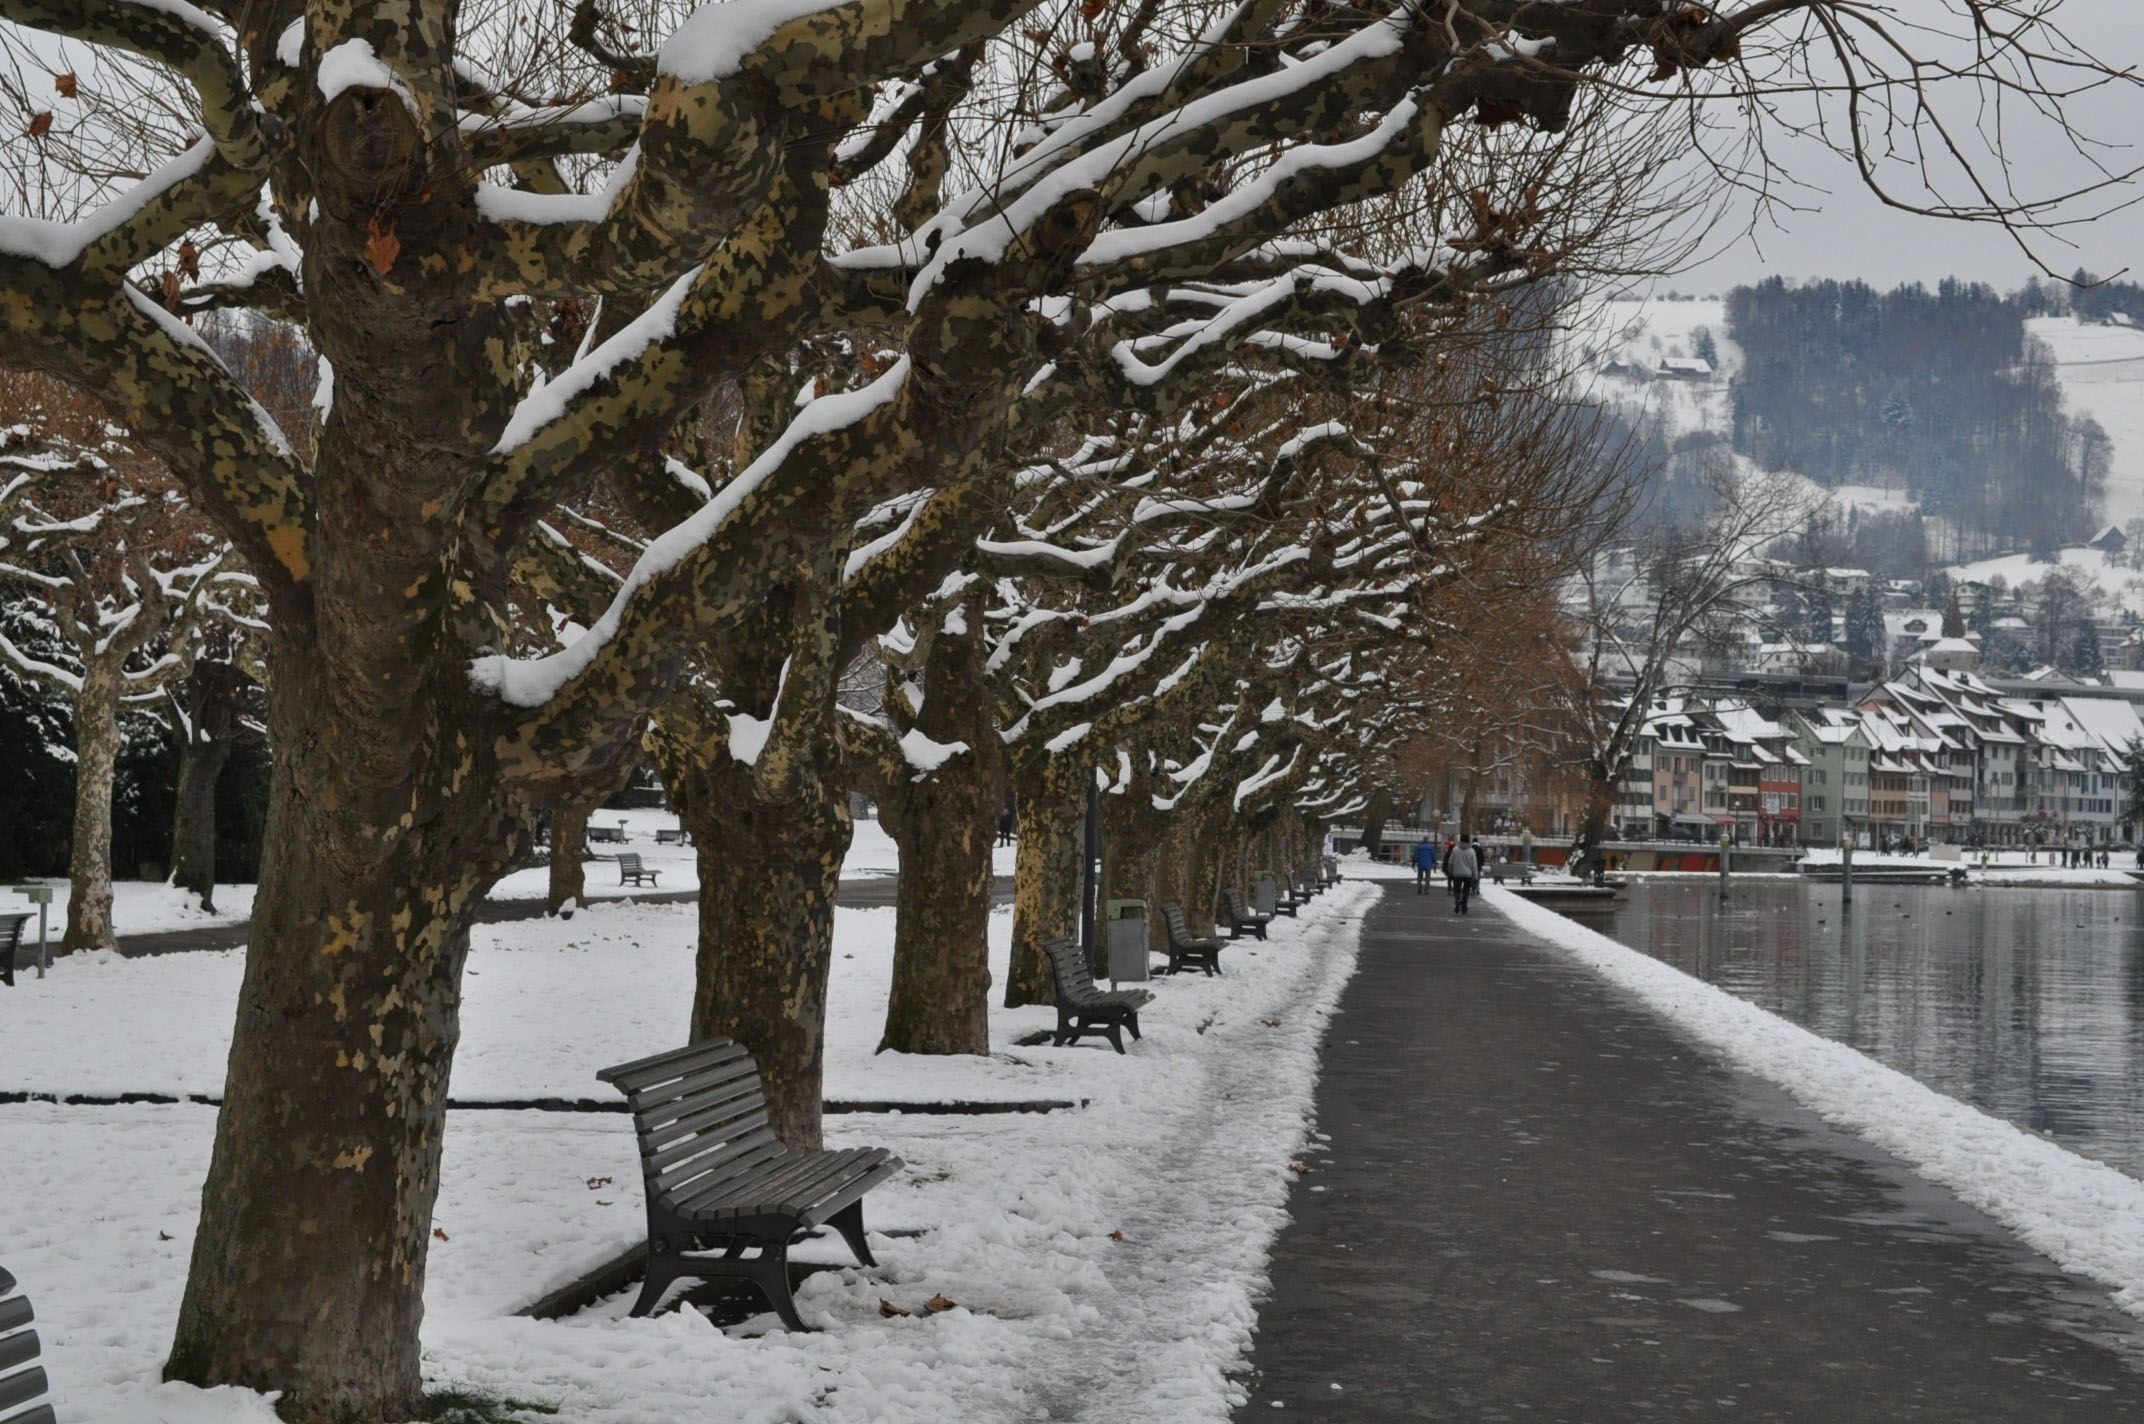 Vorstadt-Quai im Winter / Switzerland, City of Zug, Zug